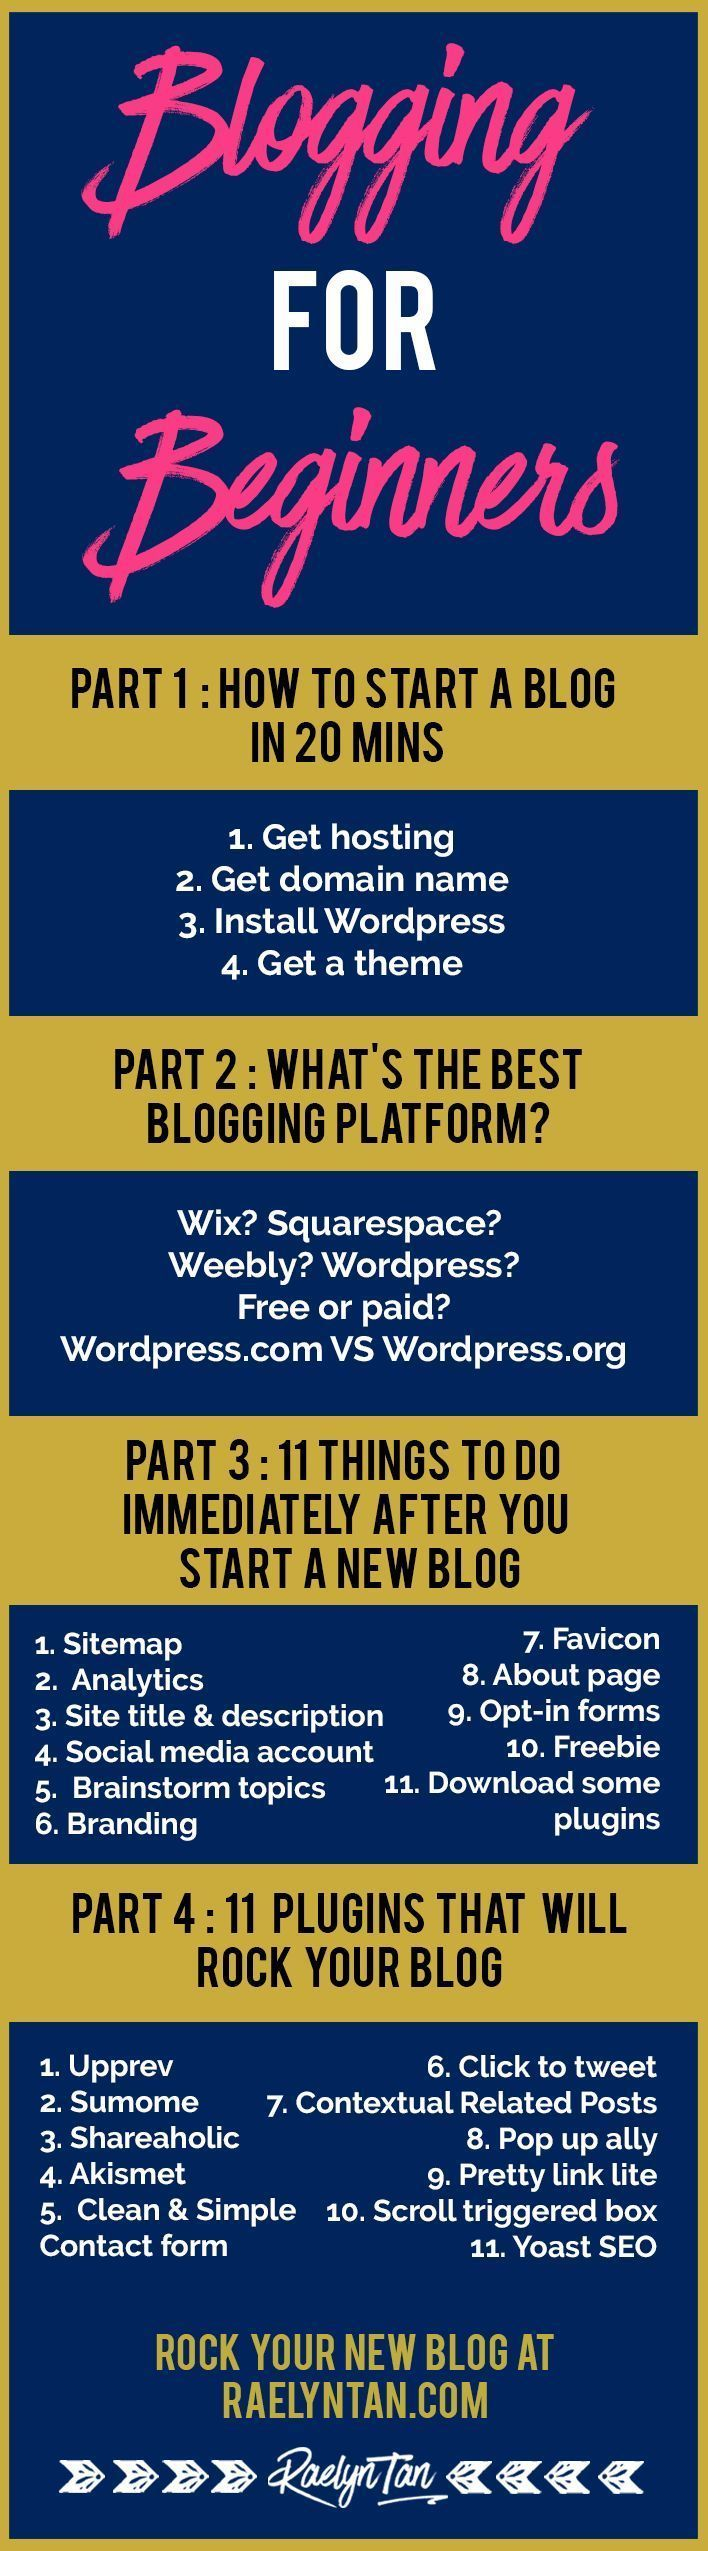 Blogging For Beginners: How to start a website to make money blogging in 20 minutes, using self-hosted WordPress. This is a 4-part series for beginner bloggers to start a blog business for profit.